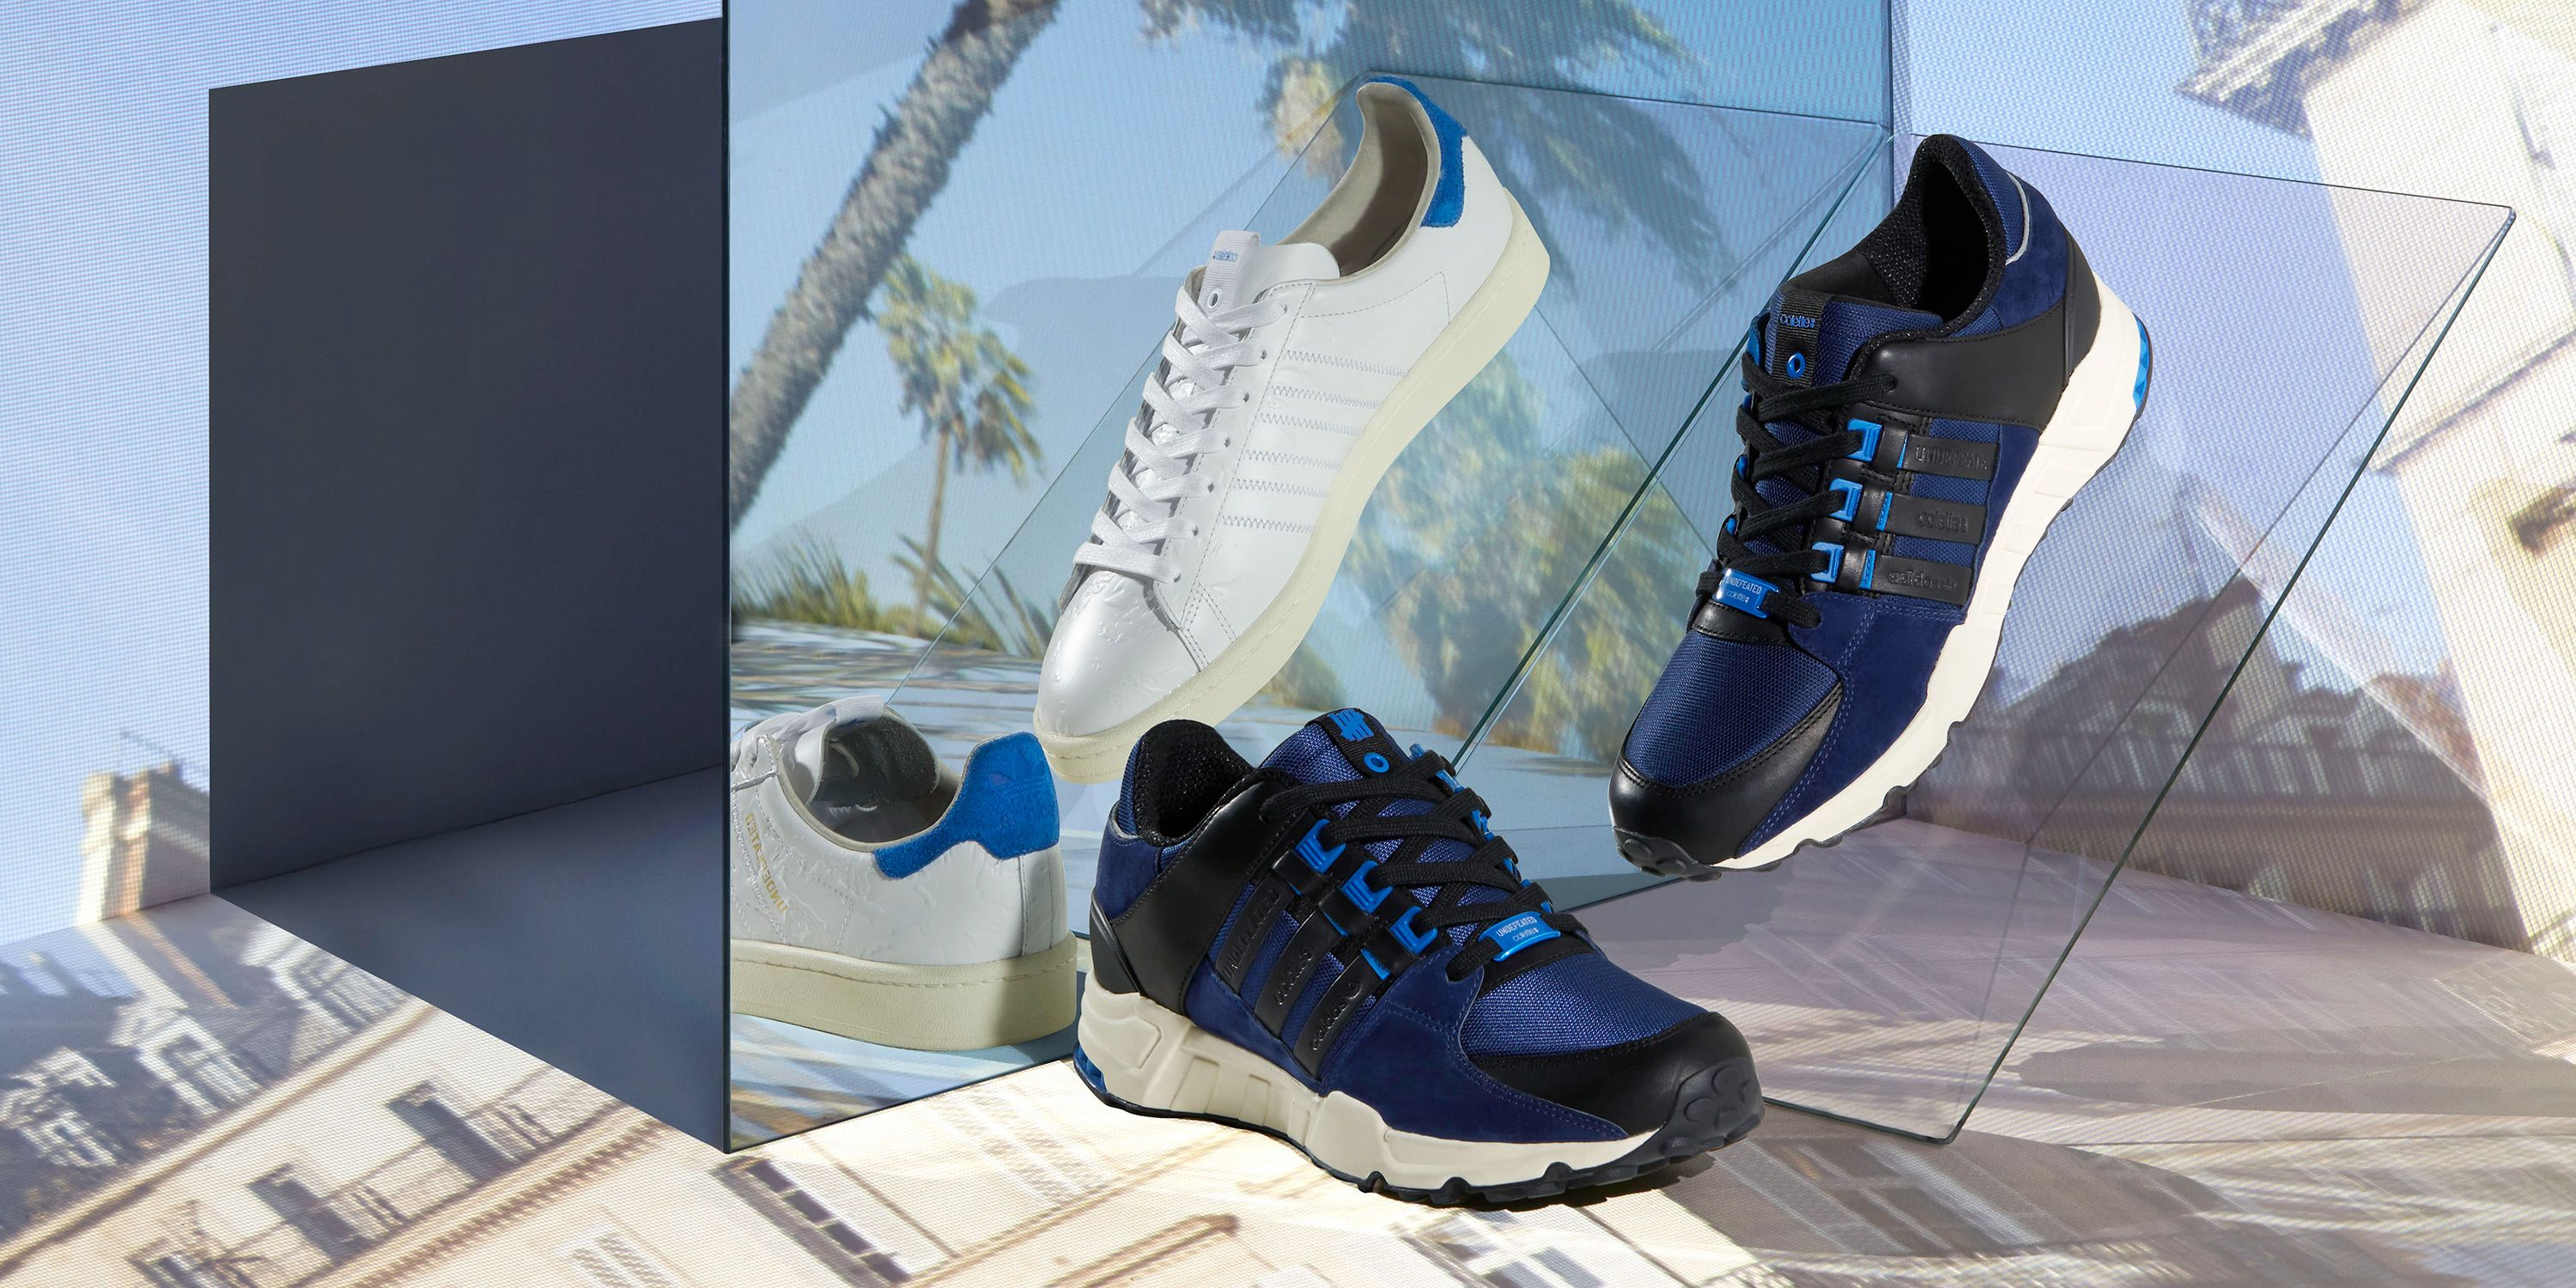 new products 75b4f db0bc Adidas Consortium Colette x Undefeated Sneakers - Where to Buy the Adidas  EQT Support and Campus 80